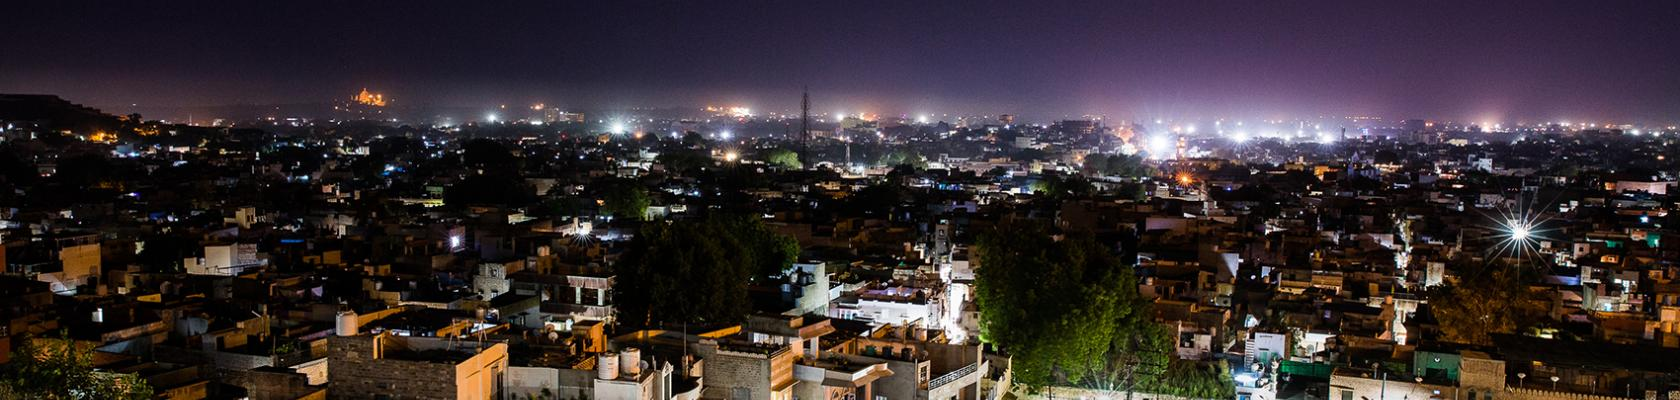 India, Jodhpur, Chandra, view of the city